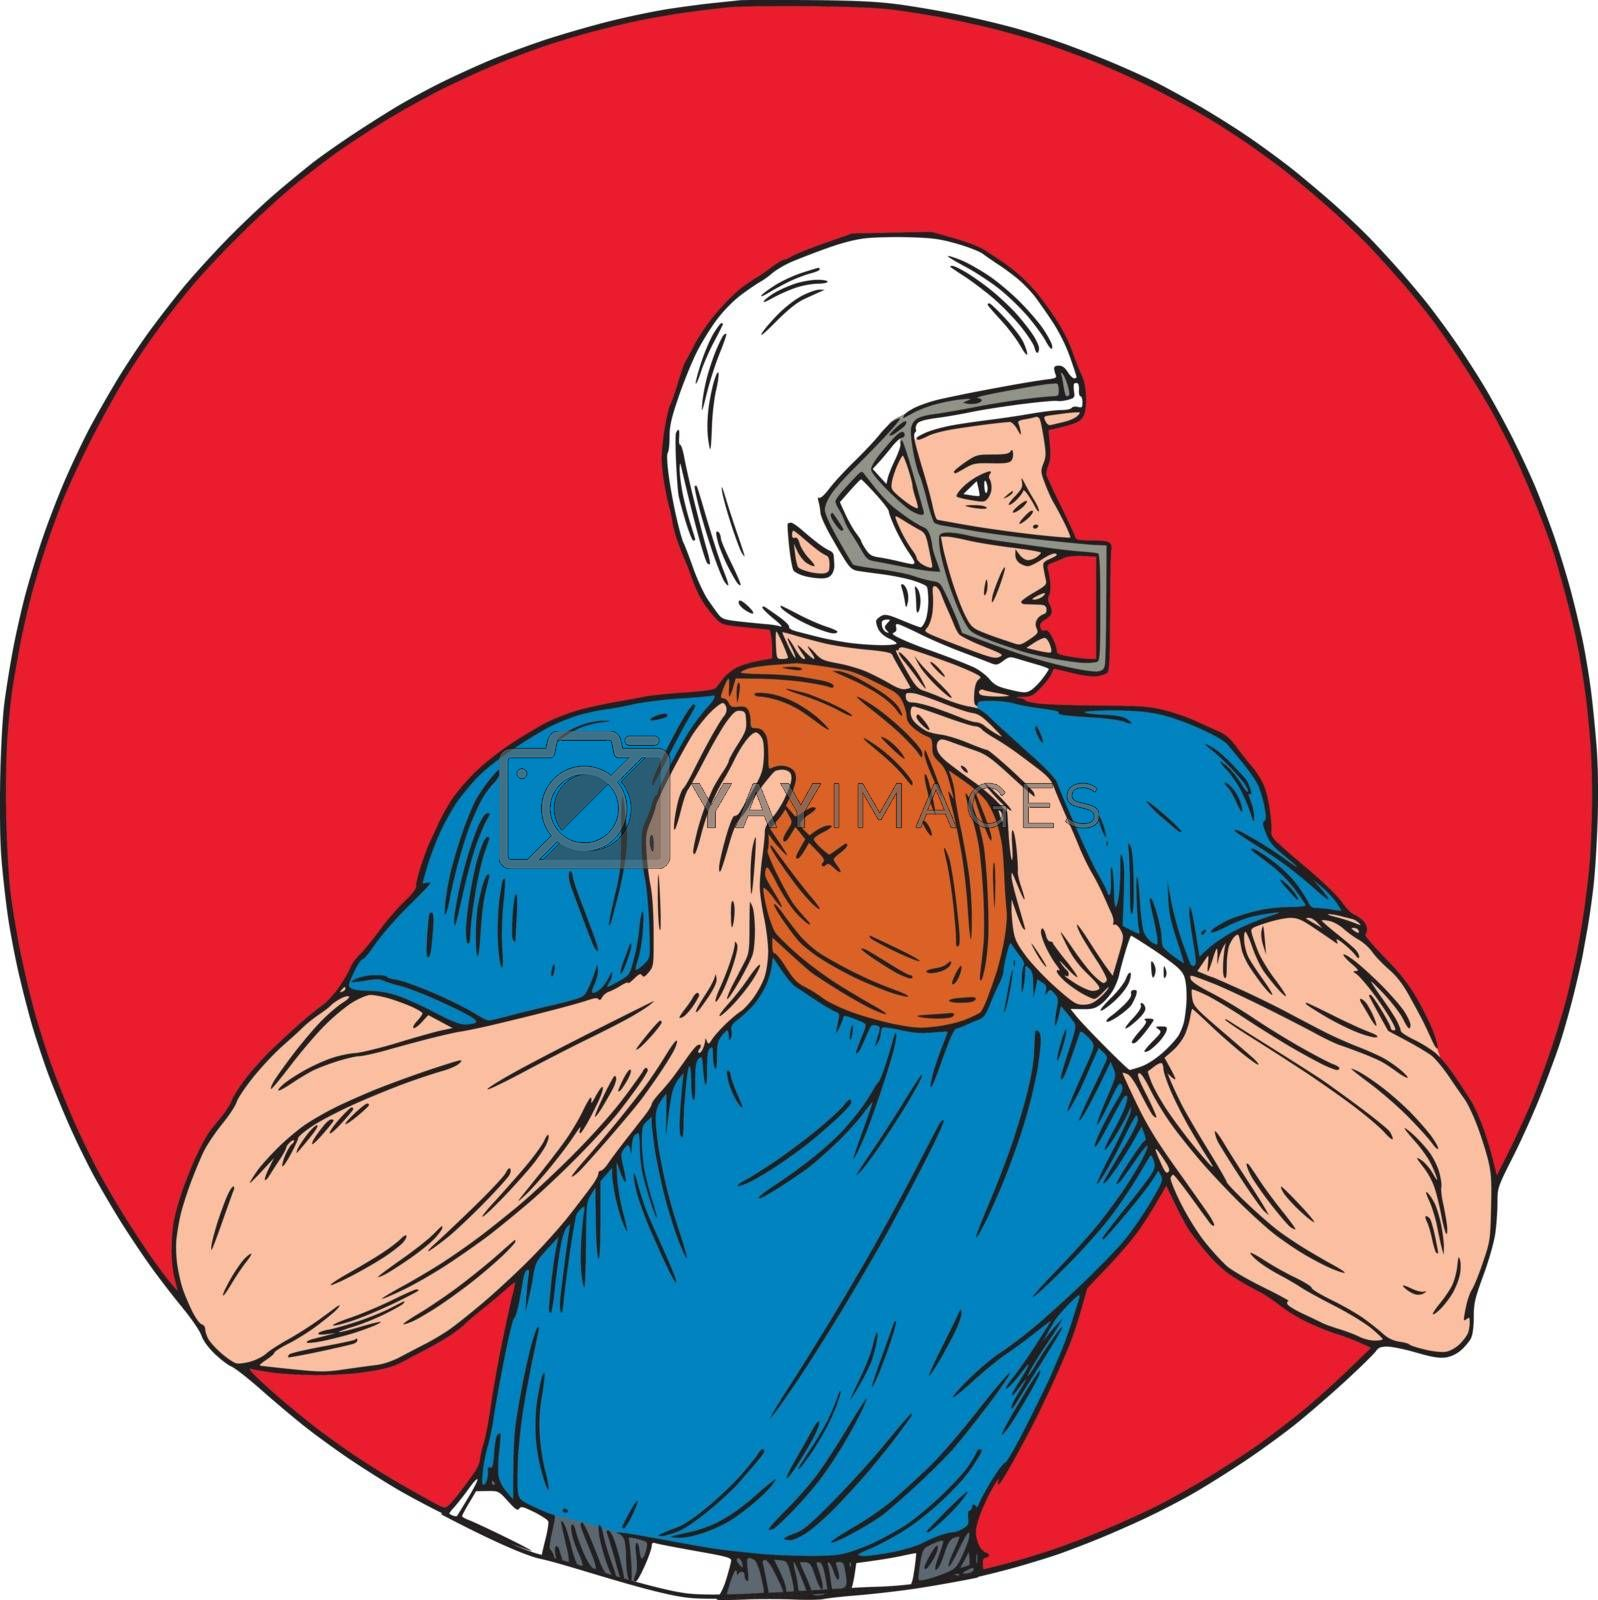 Drawing sketch style illustration of an american football gridiron quarterback player holding ball ready to throw ball viewed from the side set inside circle on isolated background.